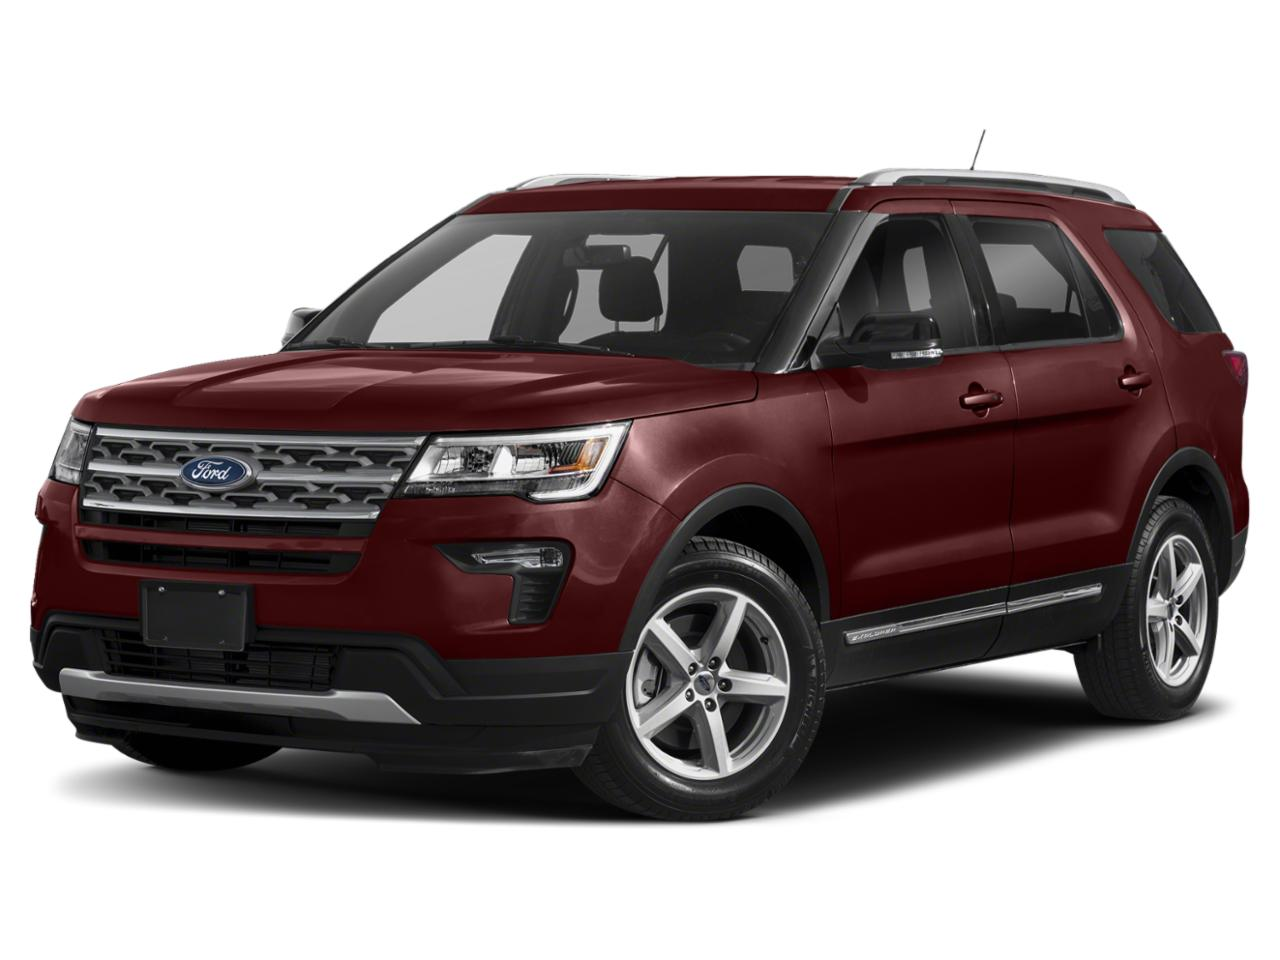 2019 Ford Explorer Vehicle Photo in Allentown, PA 18103